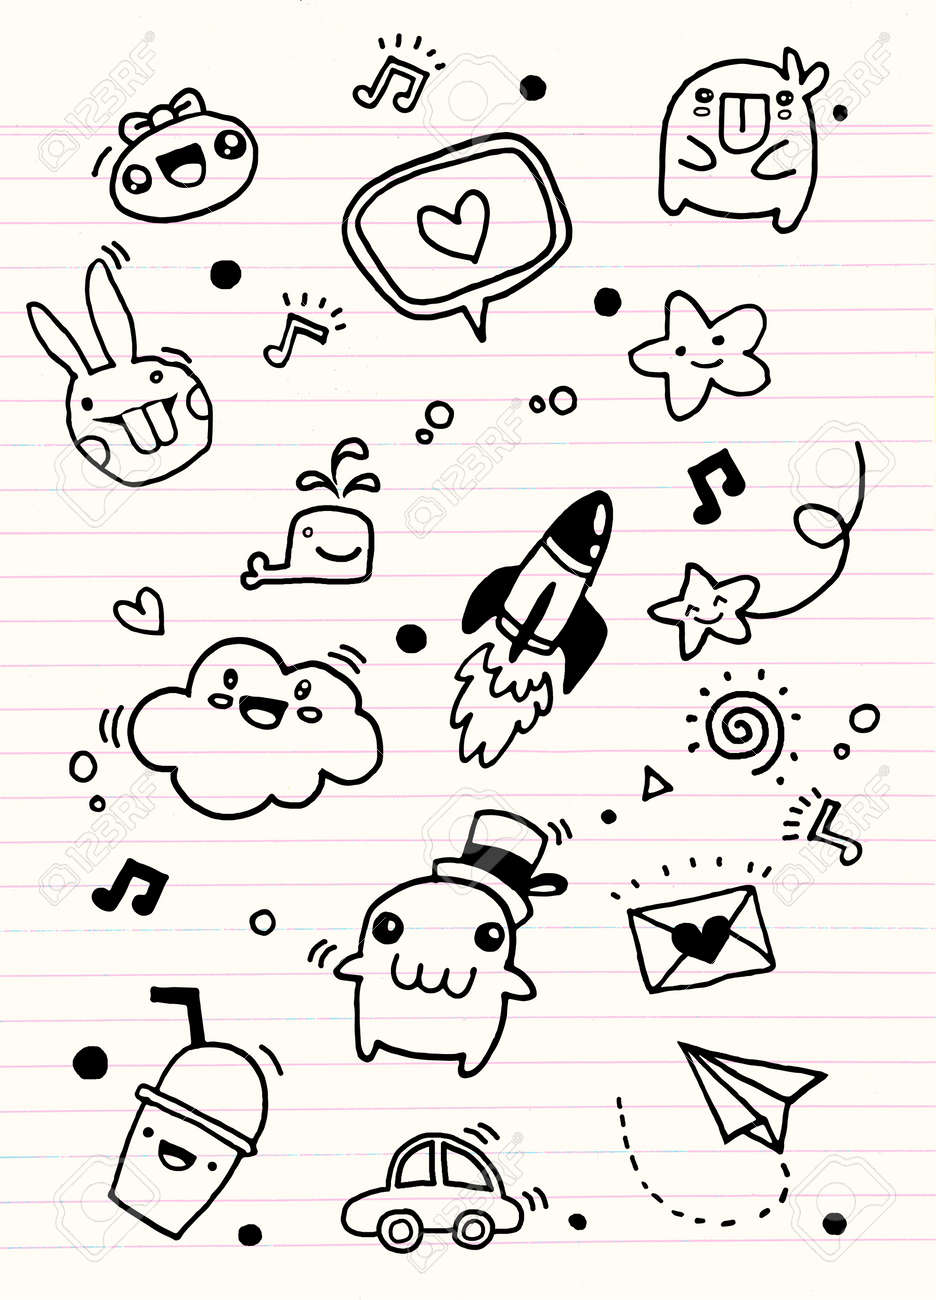 Hipster Hand Drawn Crazy Doodle Love Letter Rocket And Cute Thing